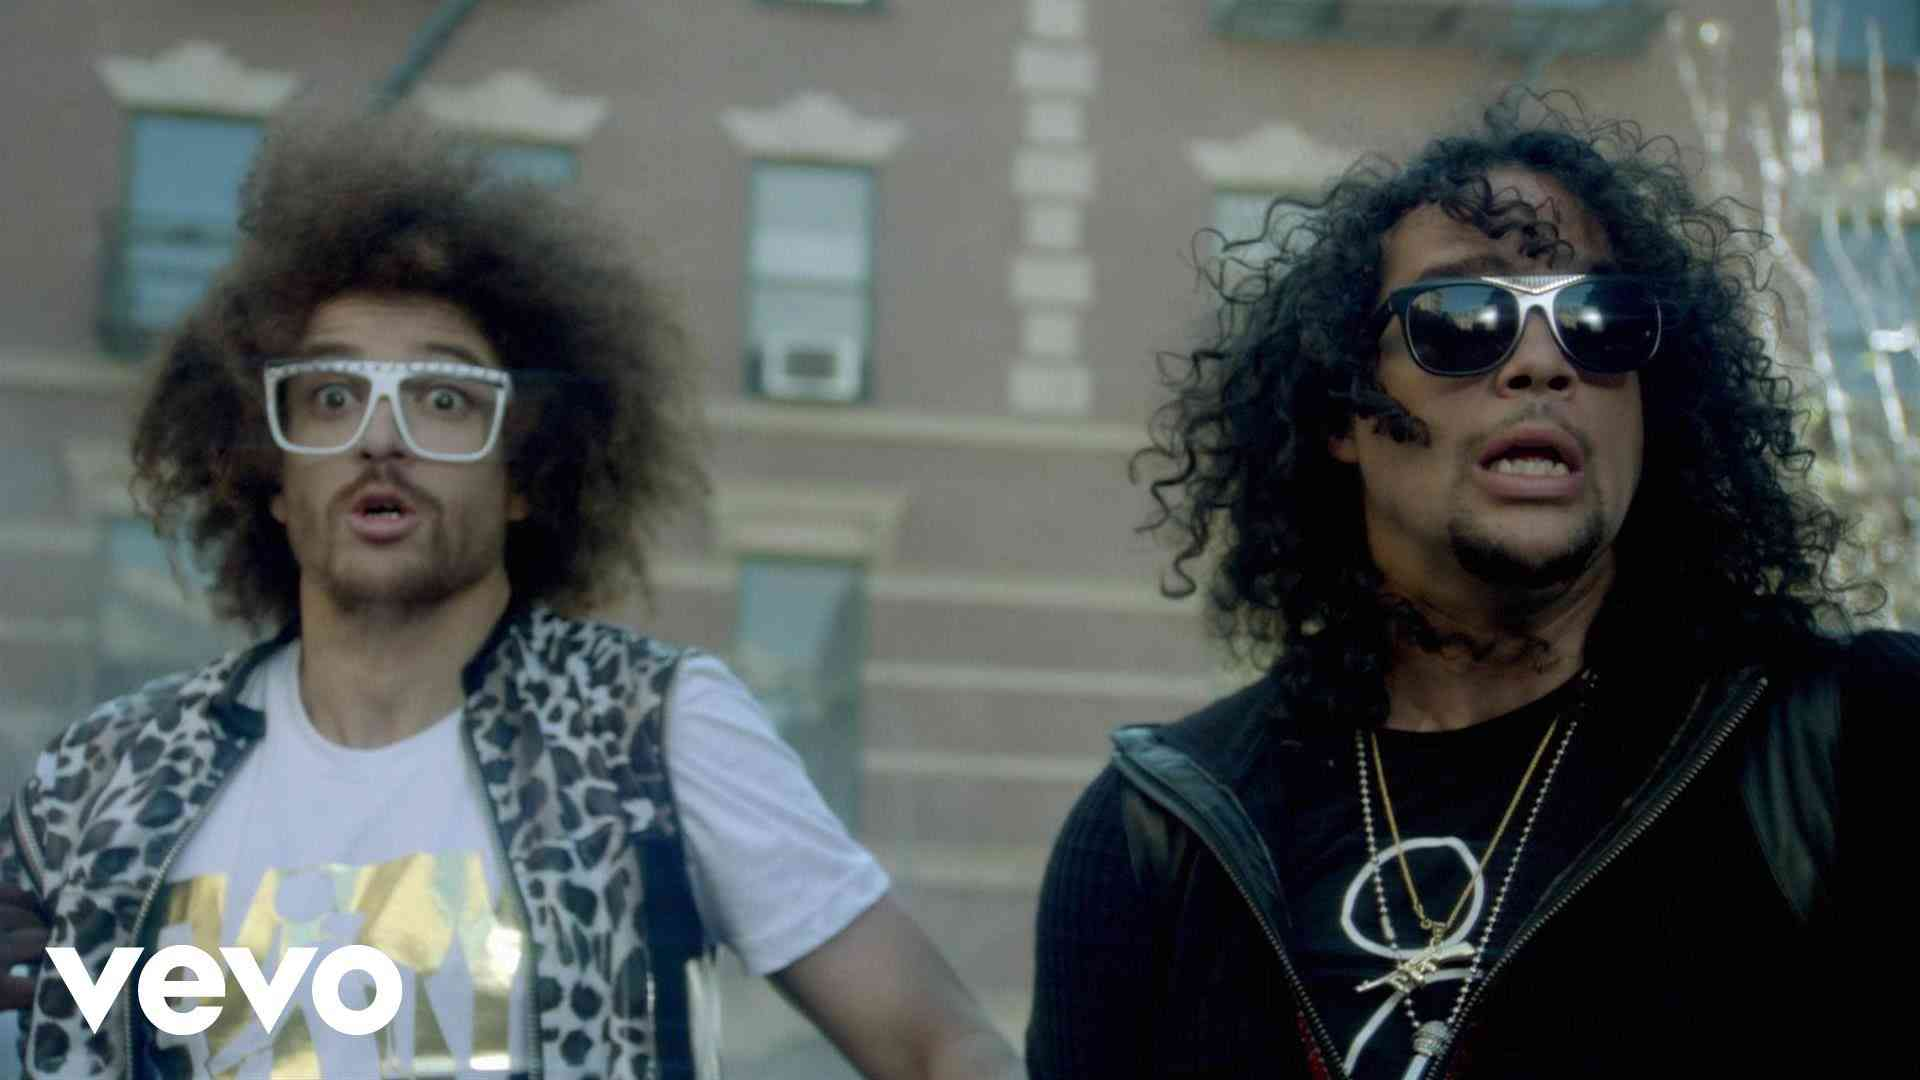 LMFAO - Party Rock Anthem ft. Lauren Bennett, GoonRock - YouTube